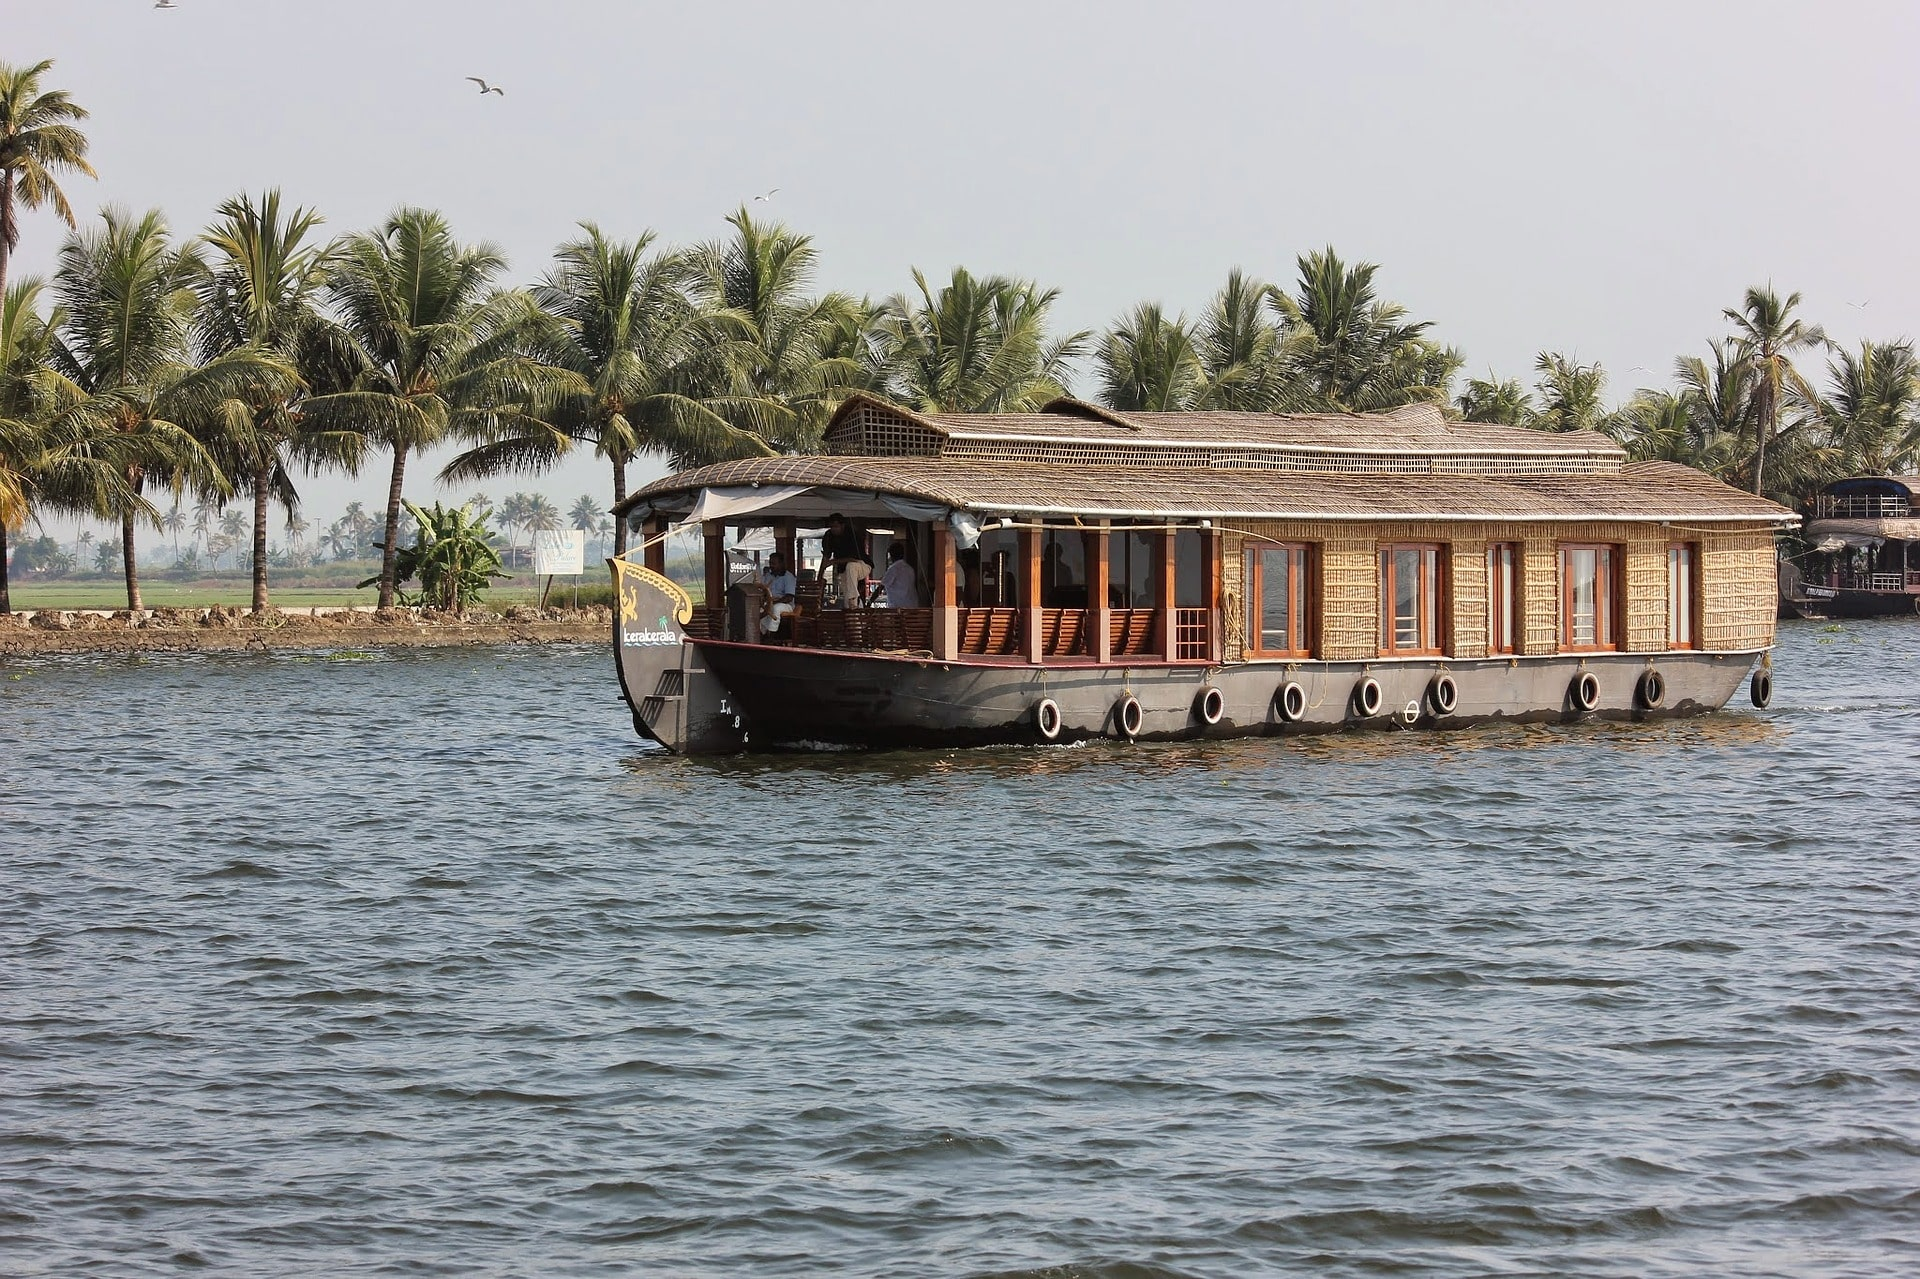 Houseboat in kerala , One of the fast growing company in Travel and Tourism